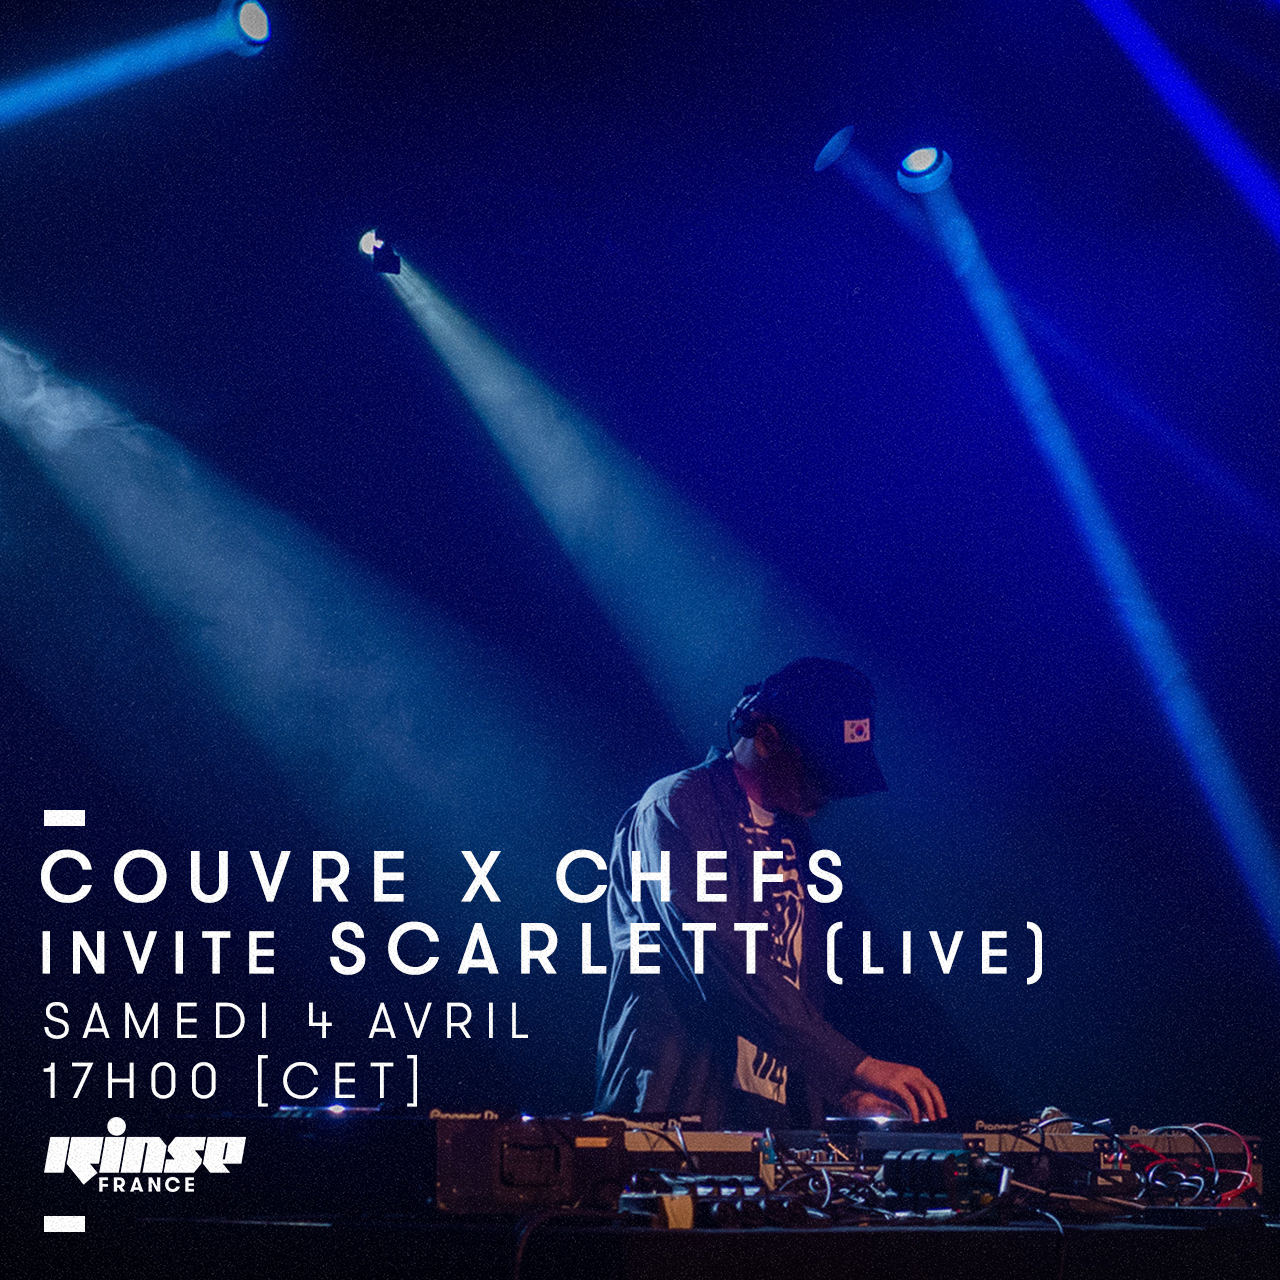 scarlett rinse france couvre x chefs